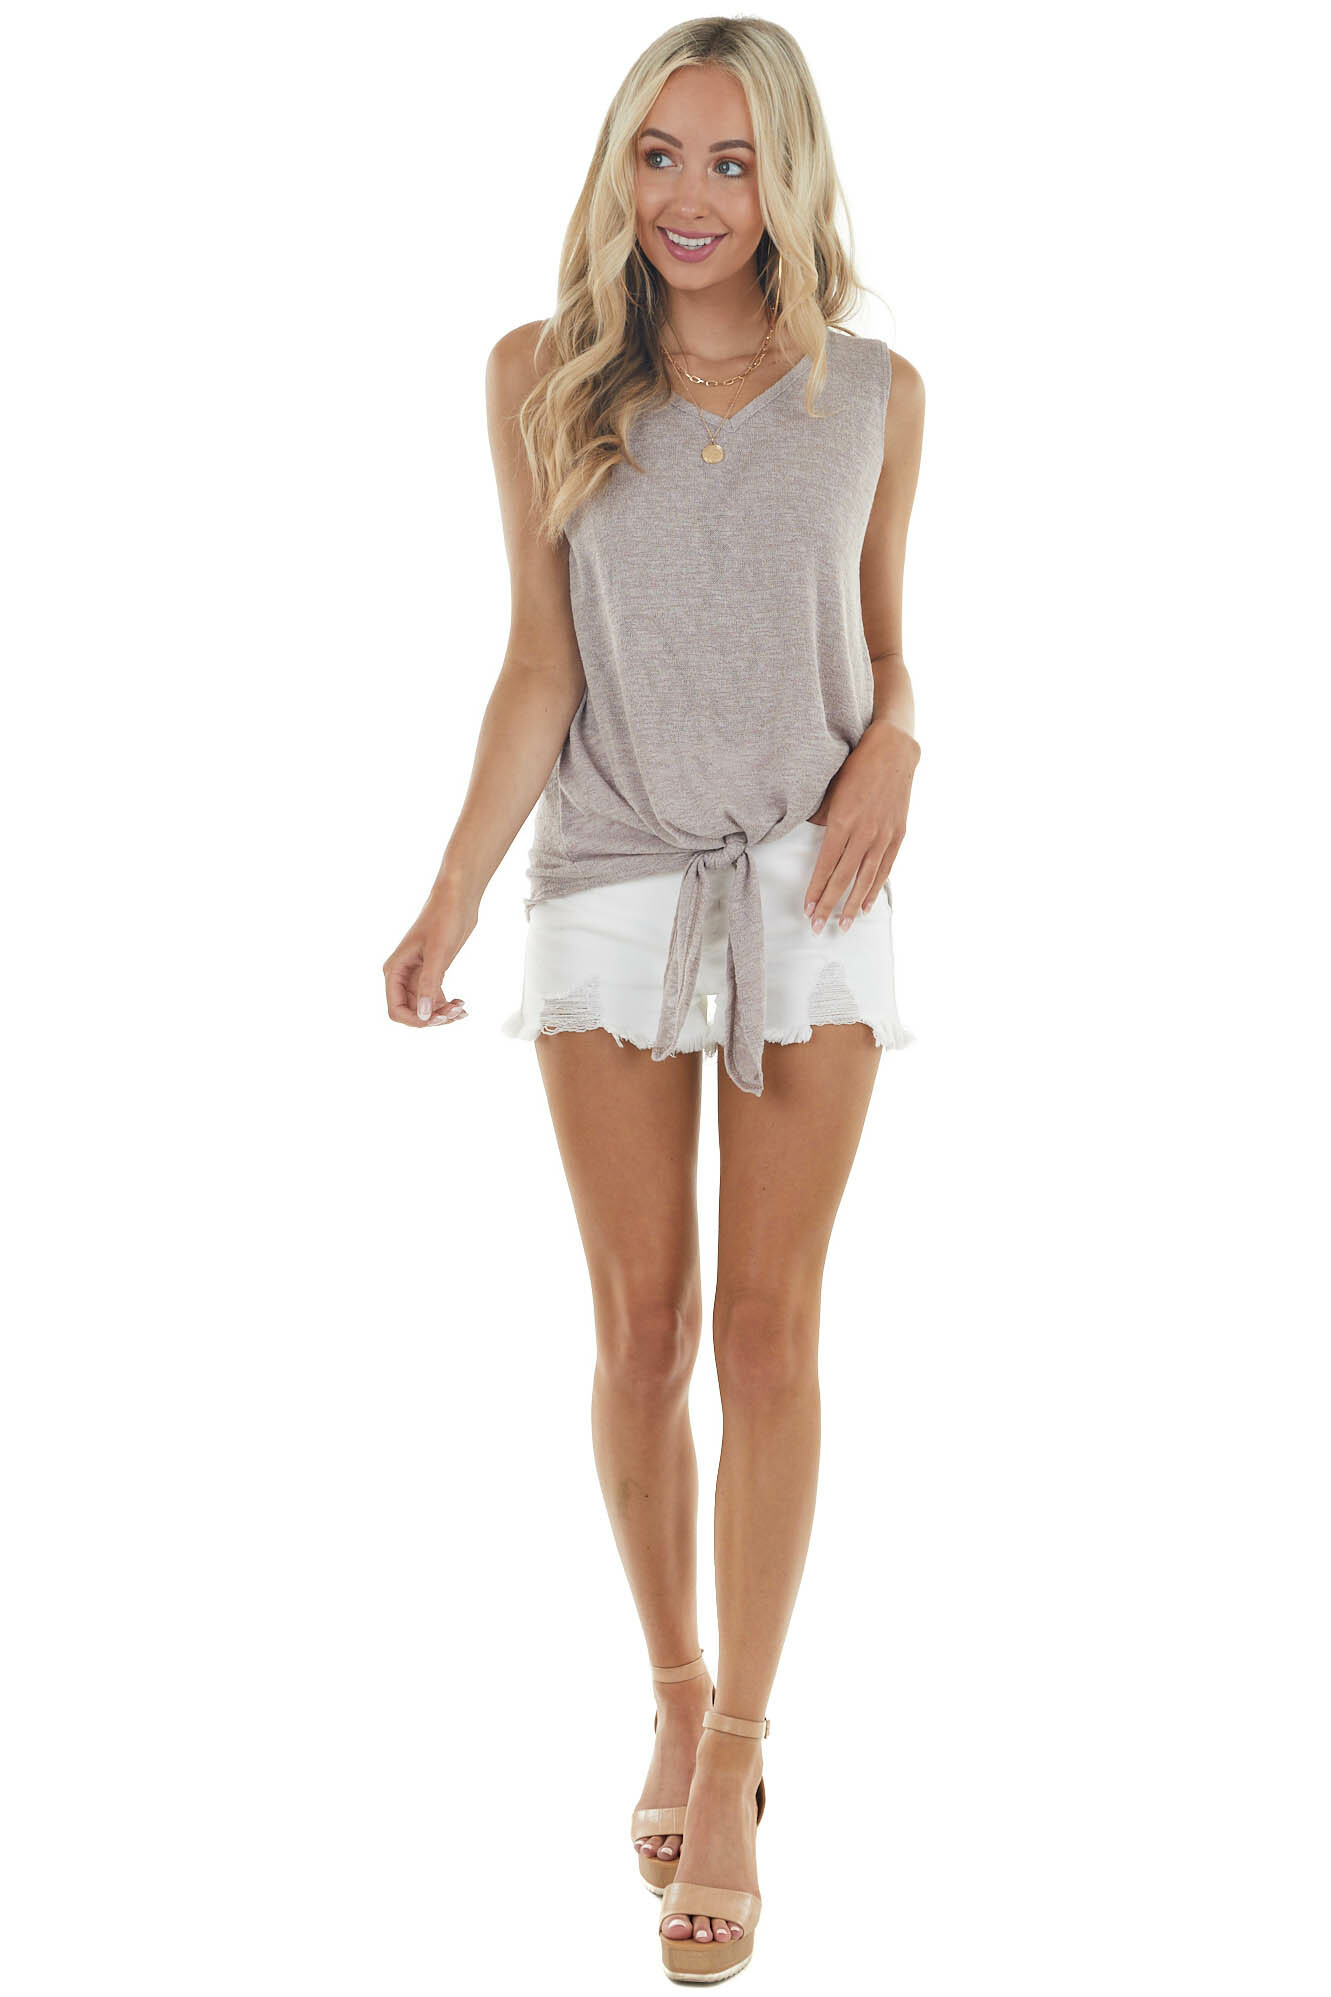 Heathered Taupe Sleeveless Knit Top with Front Tie Detail